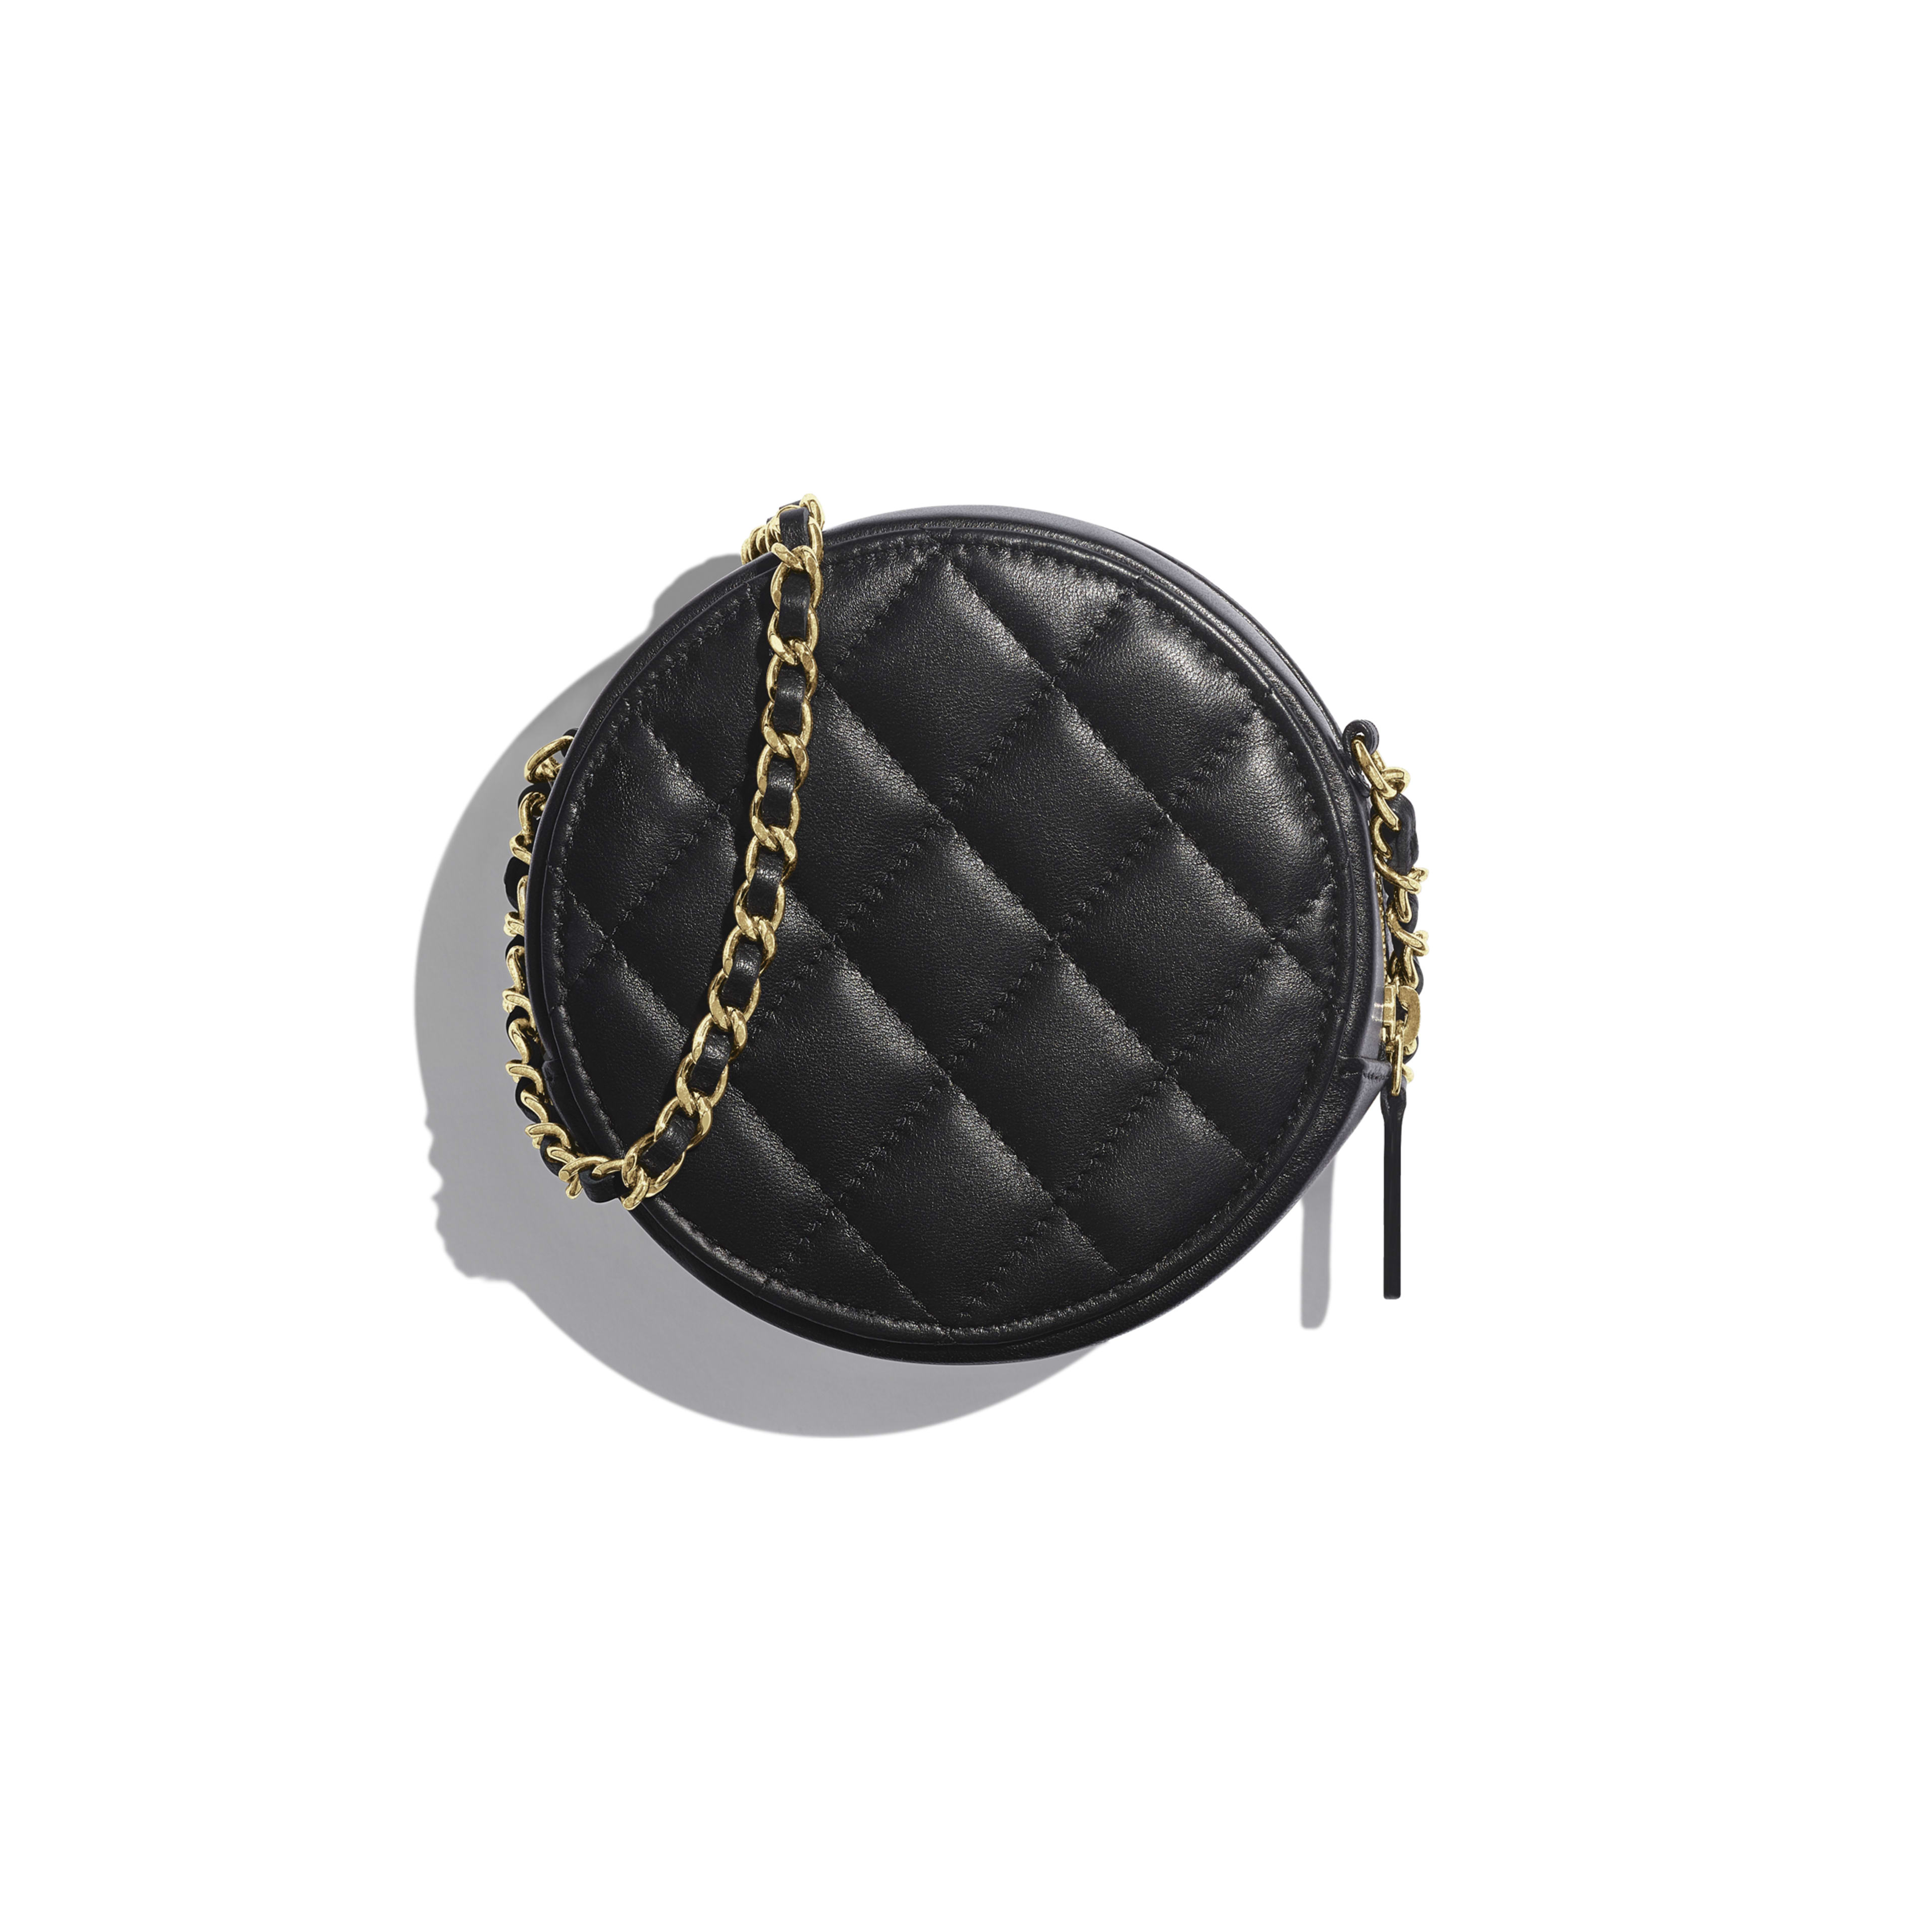 Classic Clutch with Chain - Black - Lambskin & Gold-Tone Metal - Alternative view - see full sized version